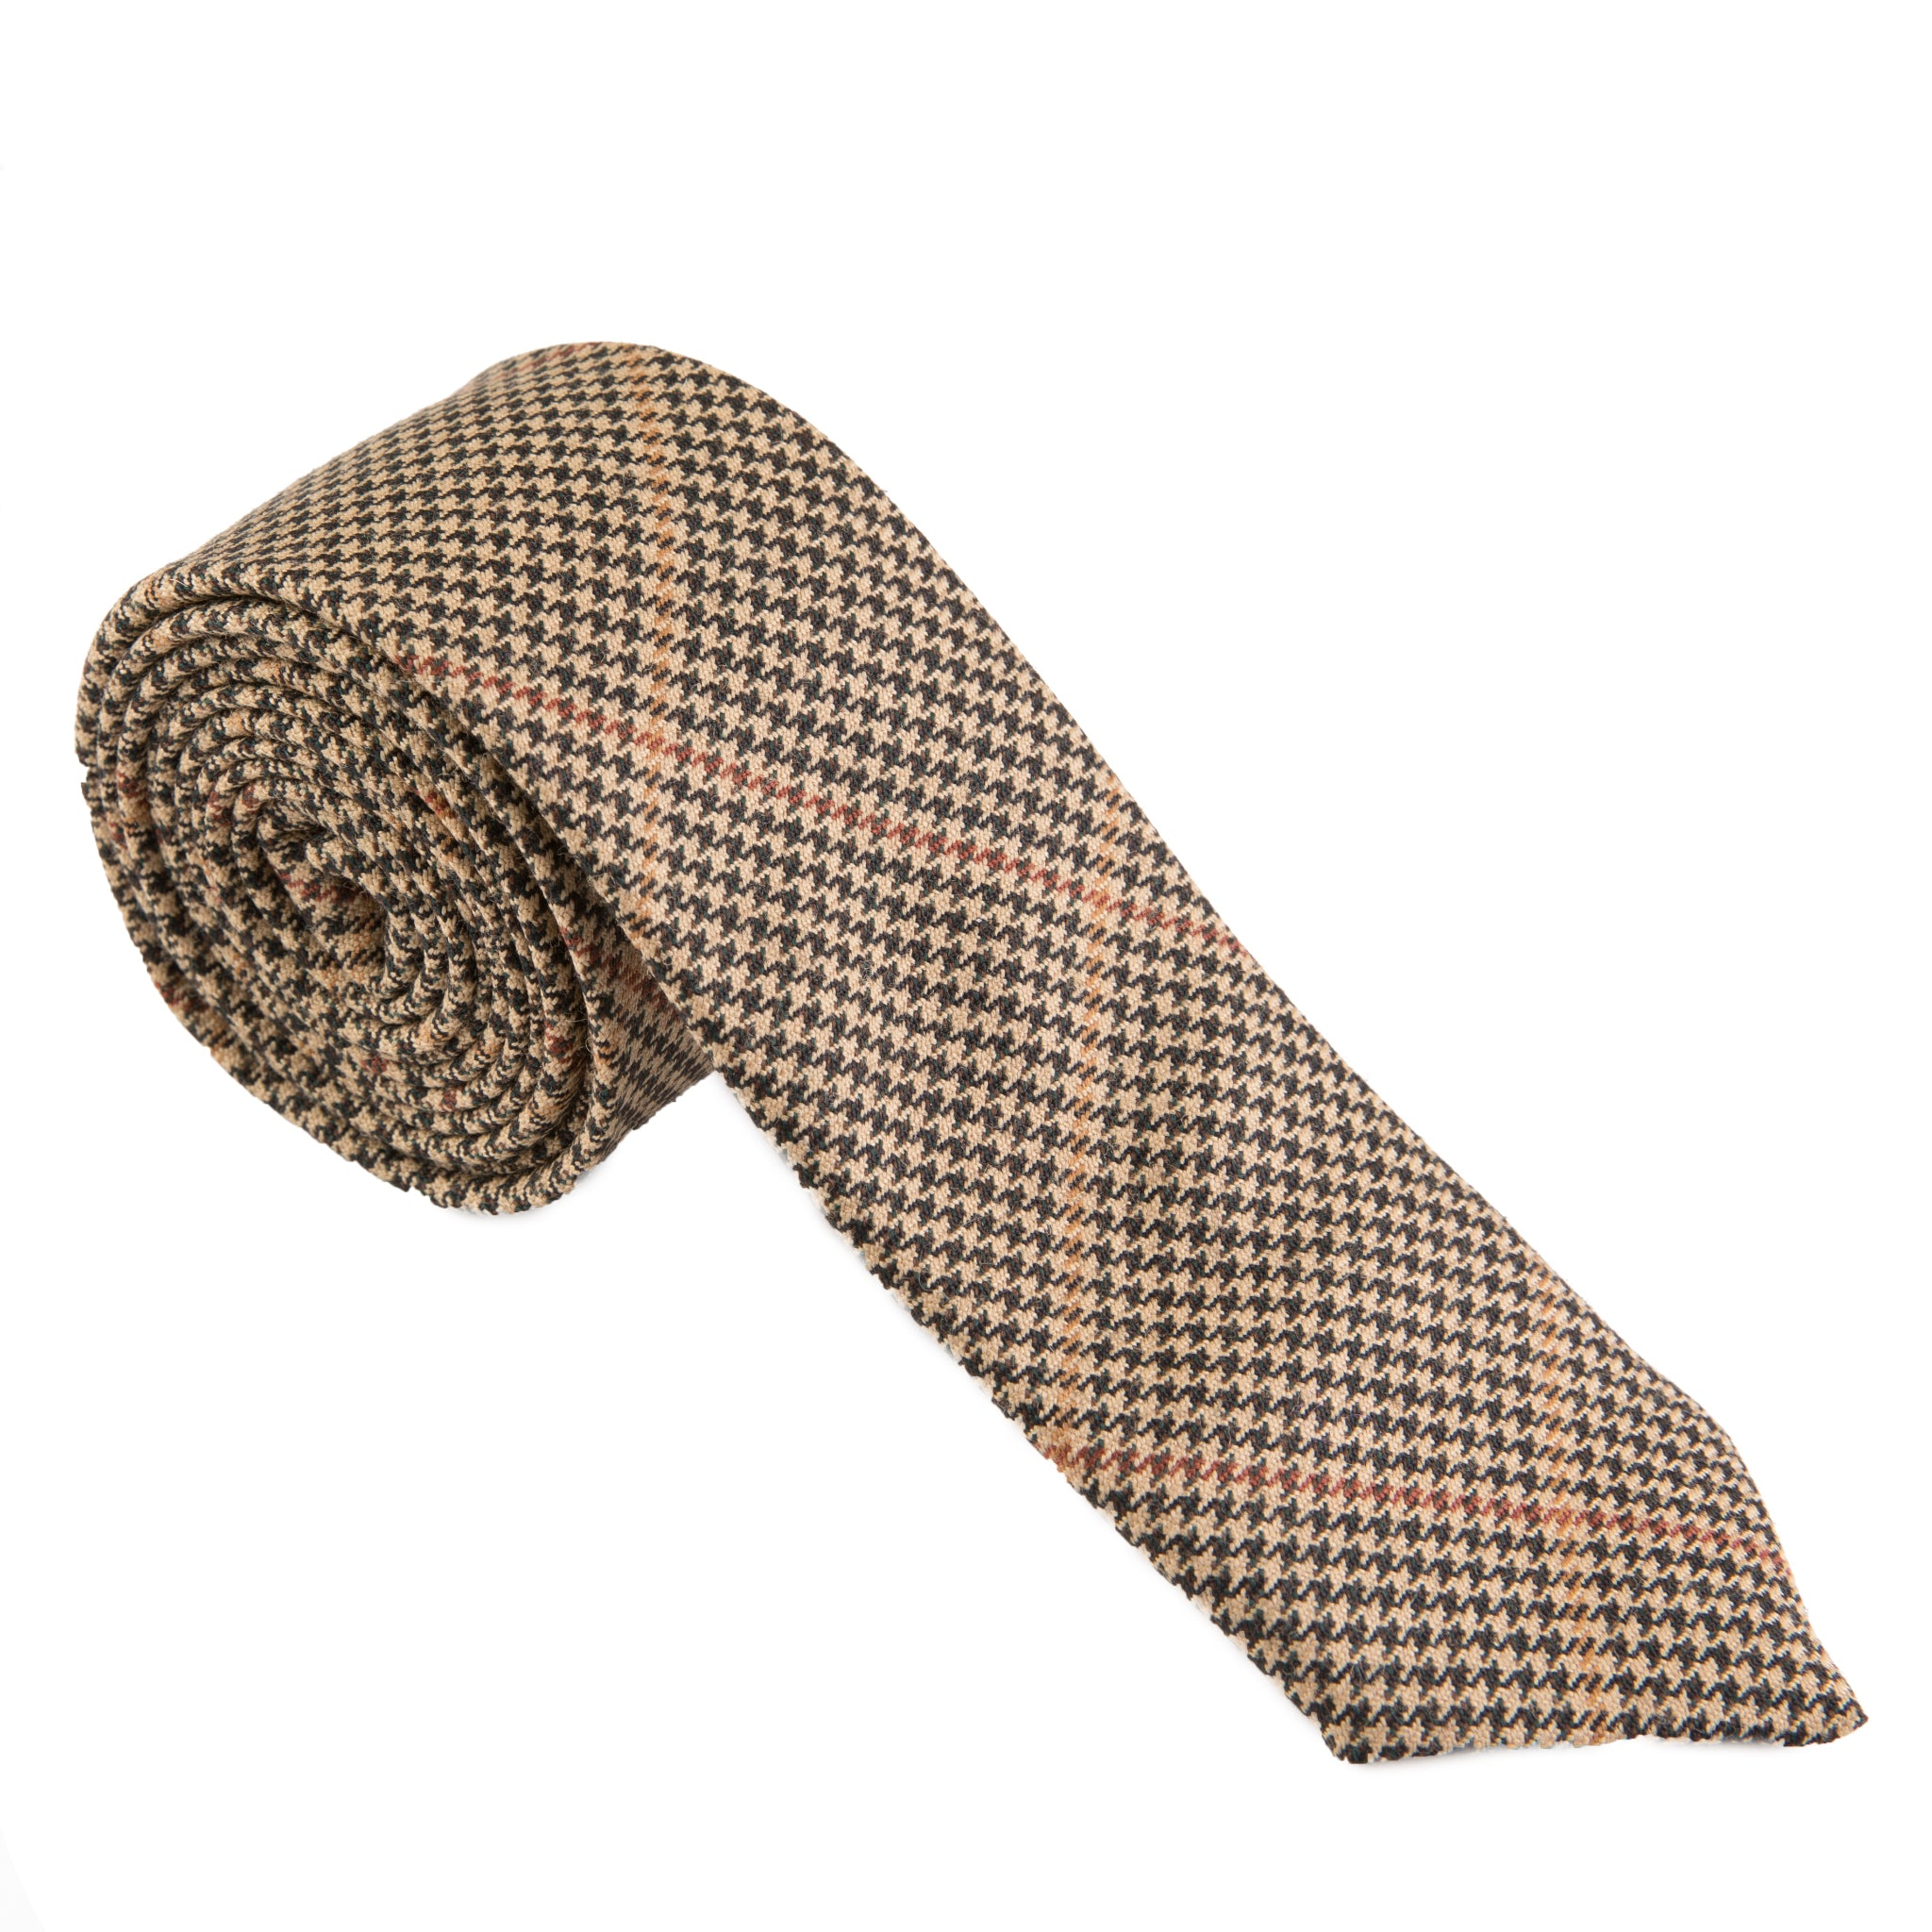 Black & Tan Houndstooth Necktie